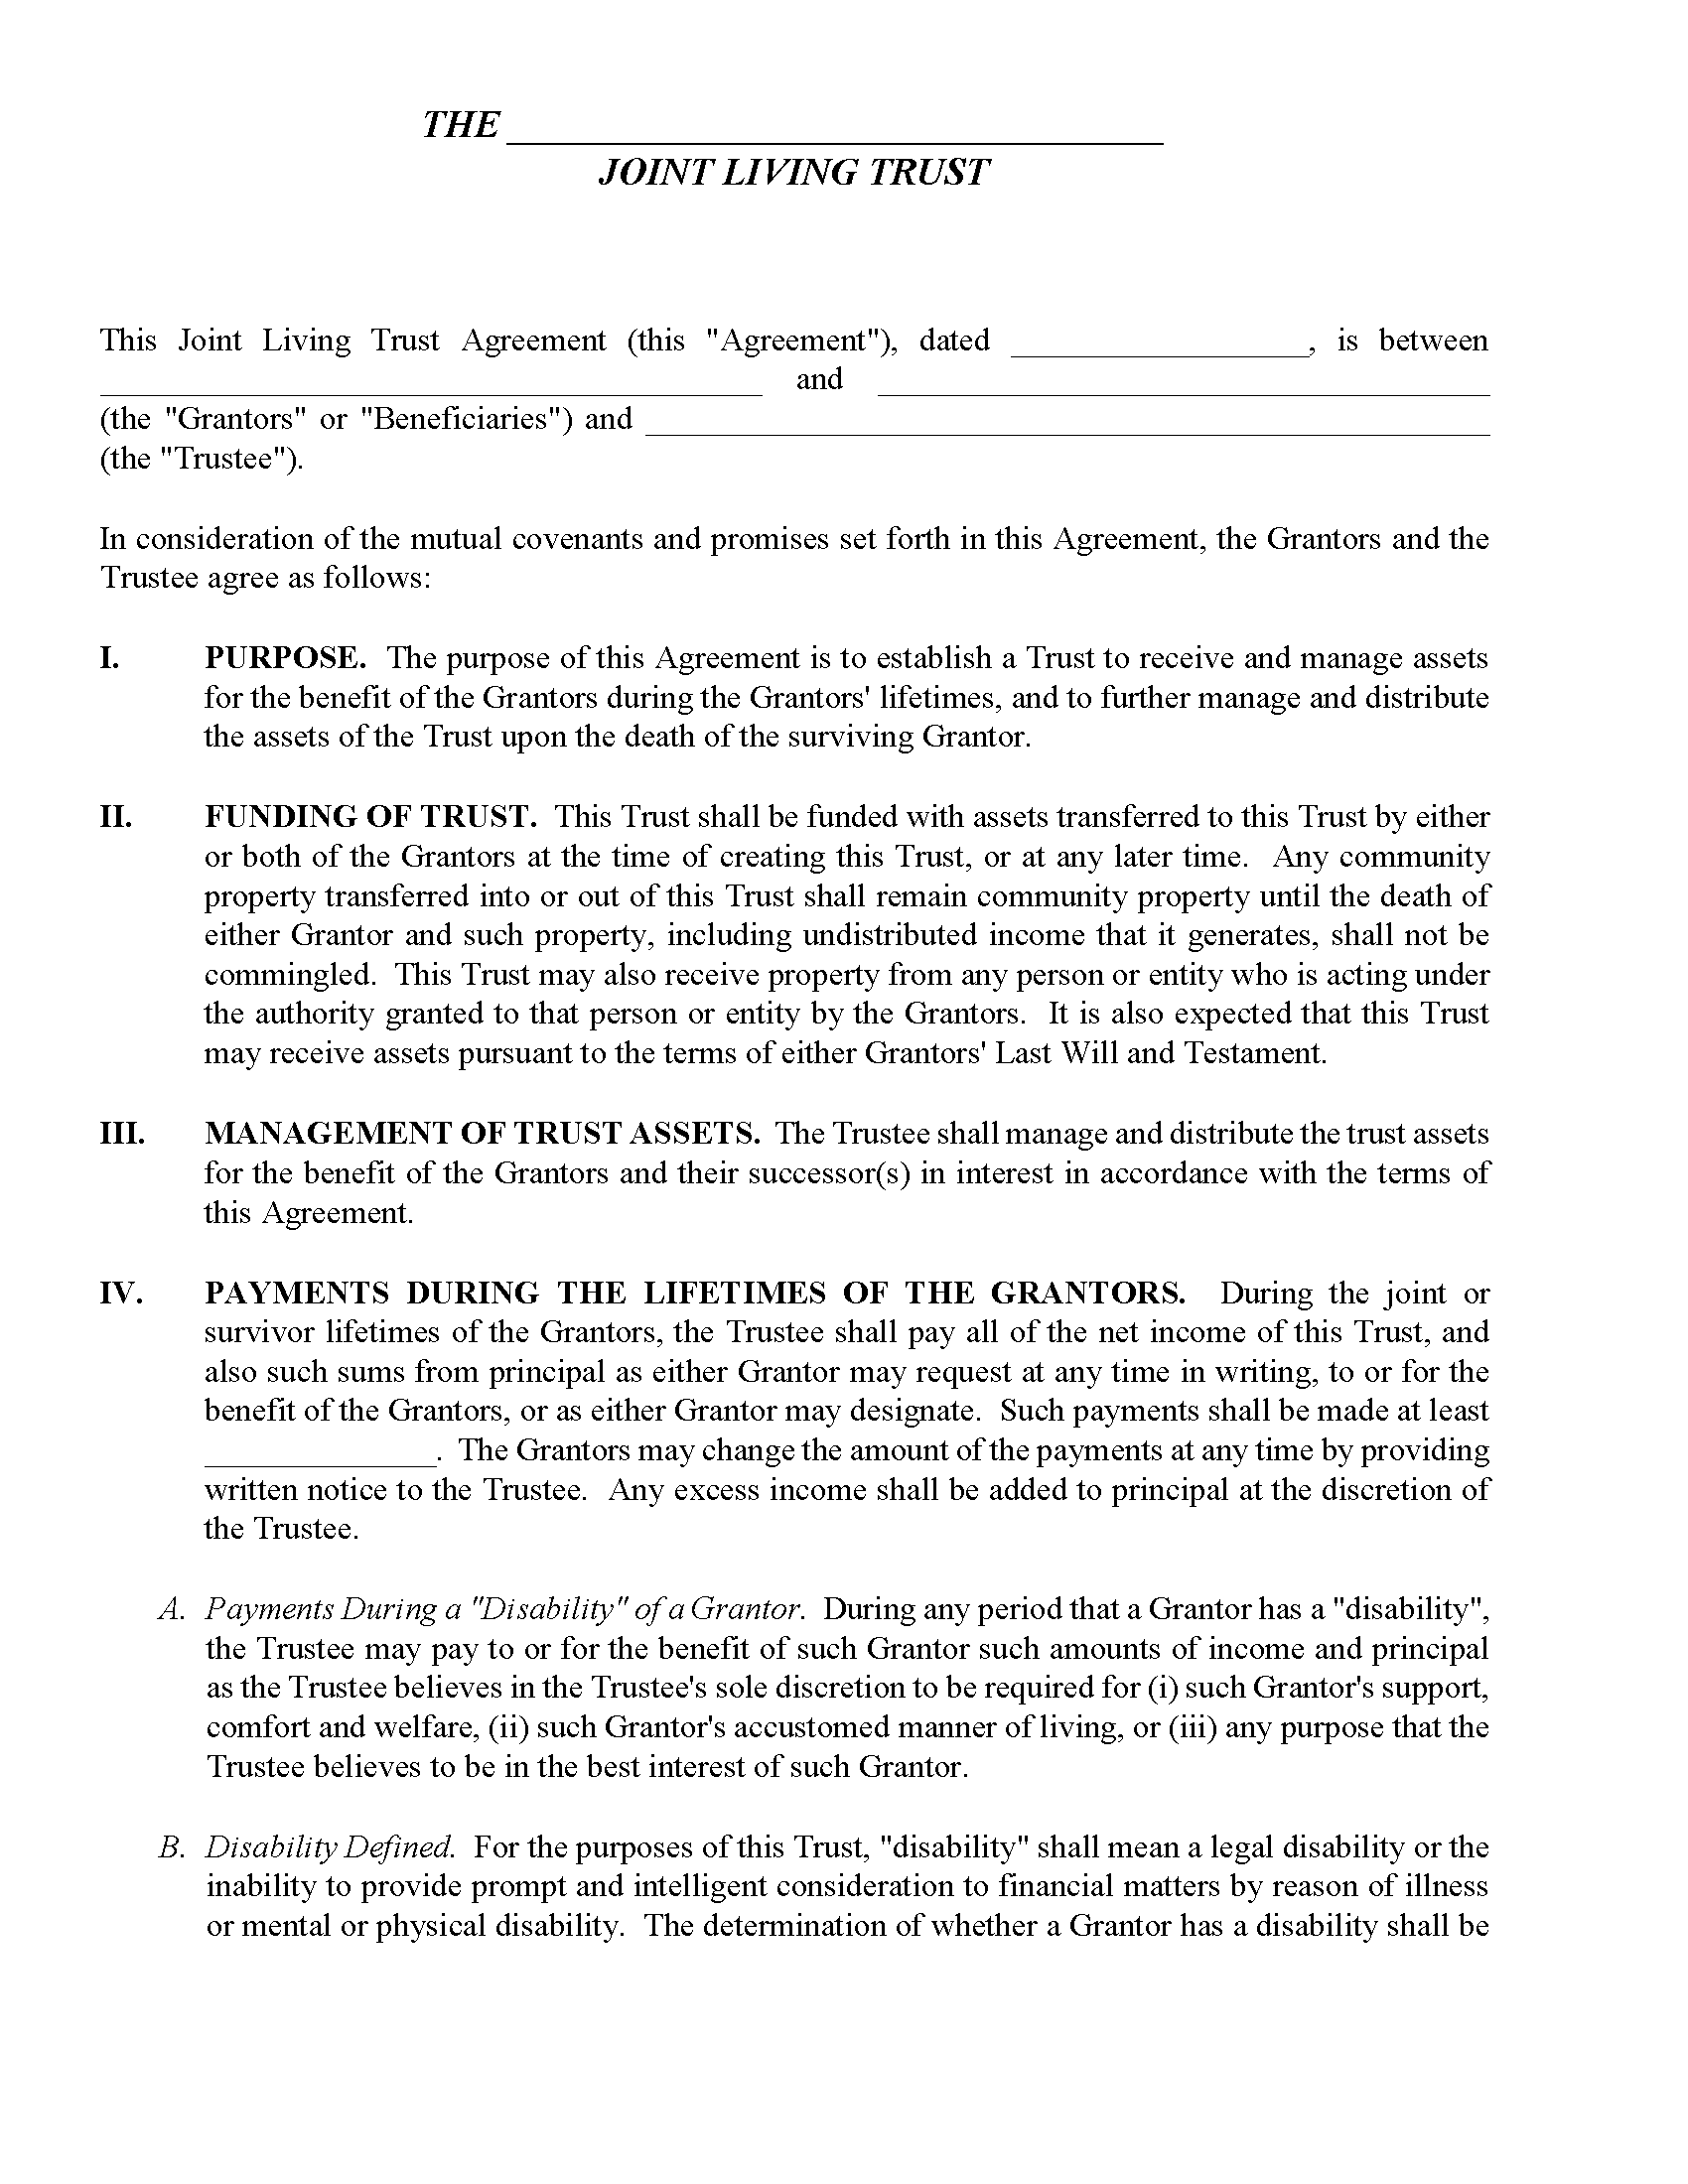 Ohio Joint Living Trust Form